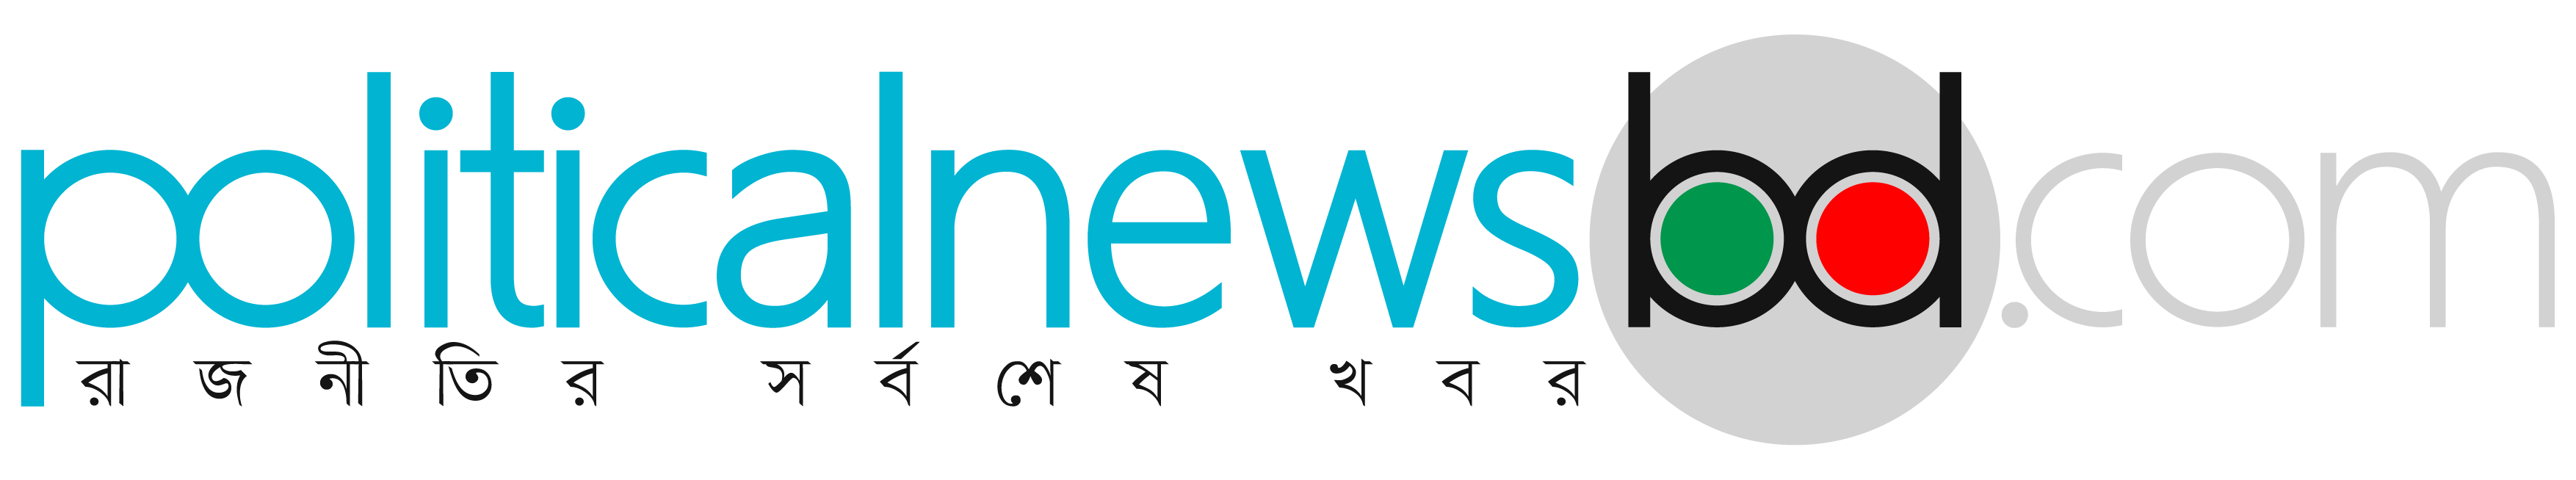 Political News Bd